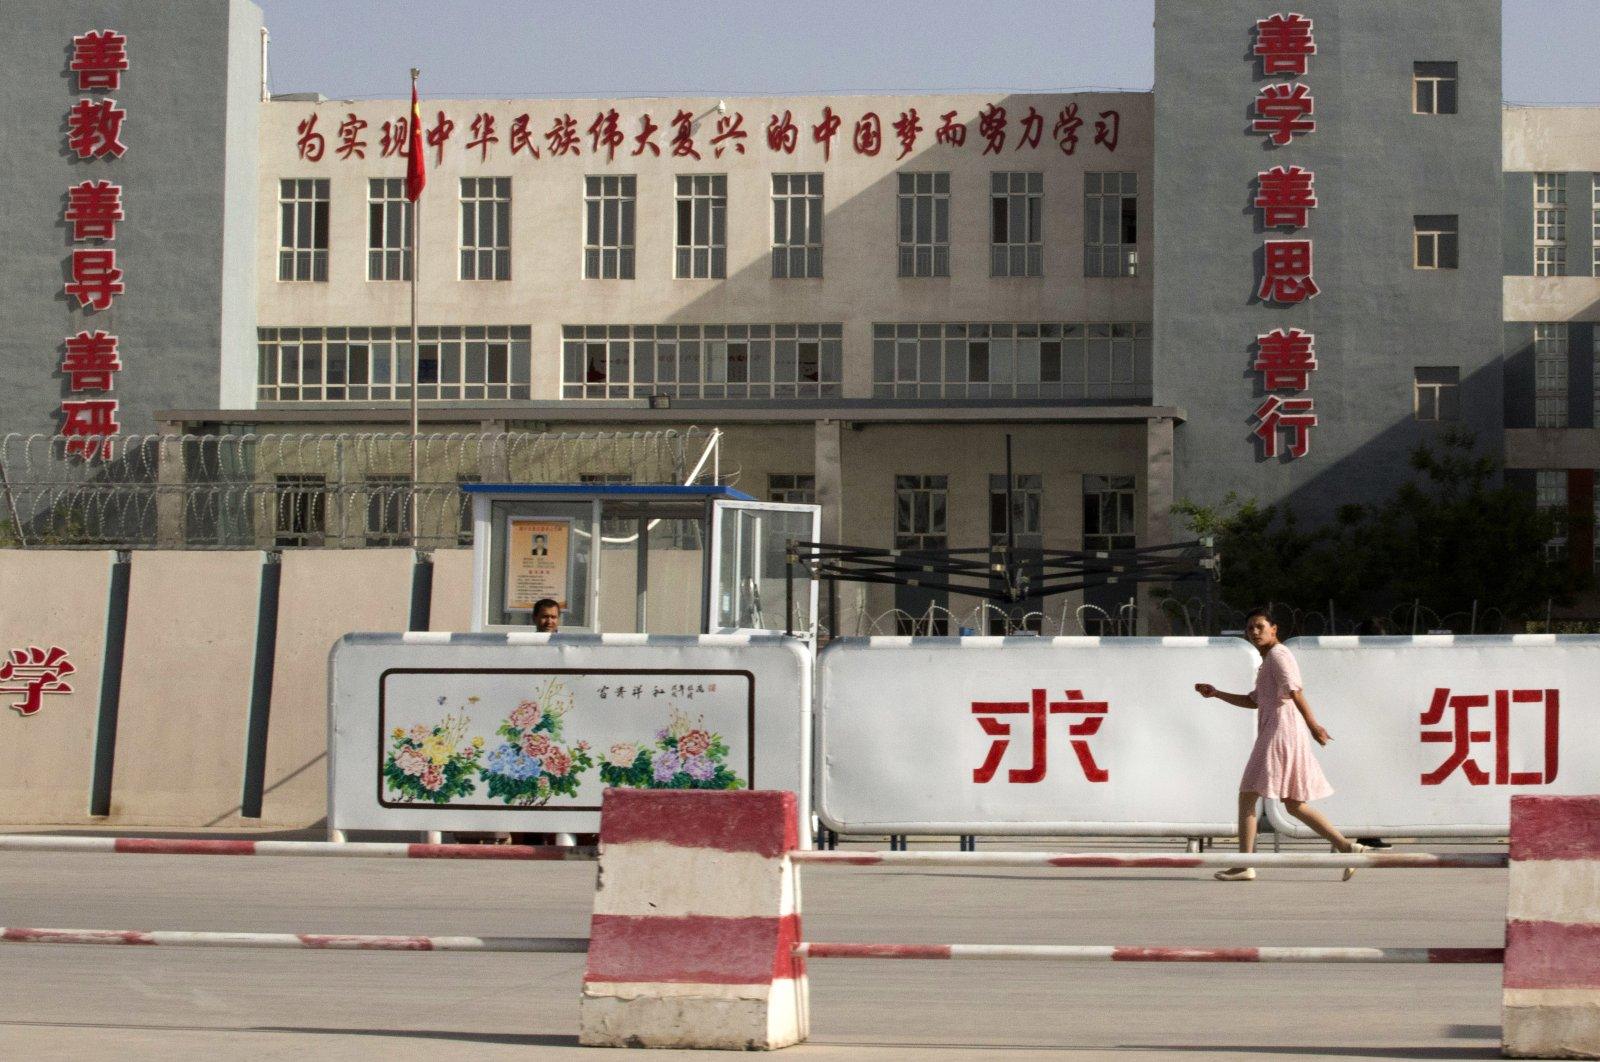 """A woman walks past the Kashgar Dongcheng No. 4 Junior Middle School, which is part of a cluster of schools with slogans that read, """"Study hard to realize the Chinese dream of the great rejuvenation of the Chinese nation,"""" on the outskirts of Kashgar, in the Xinjiang Uyghur Autonomous Region, western China, Aug. 31, 2018. (AP Photo)"""